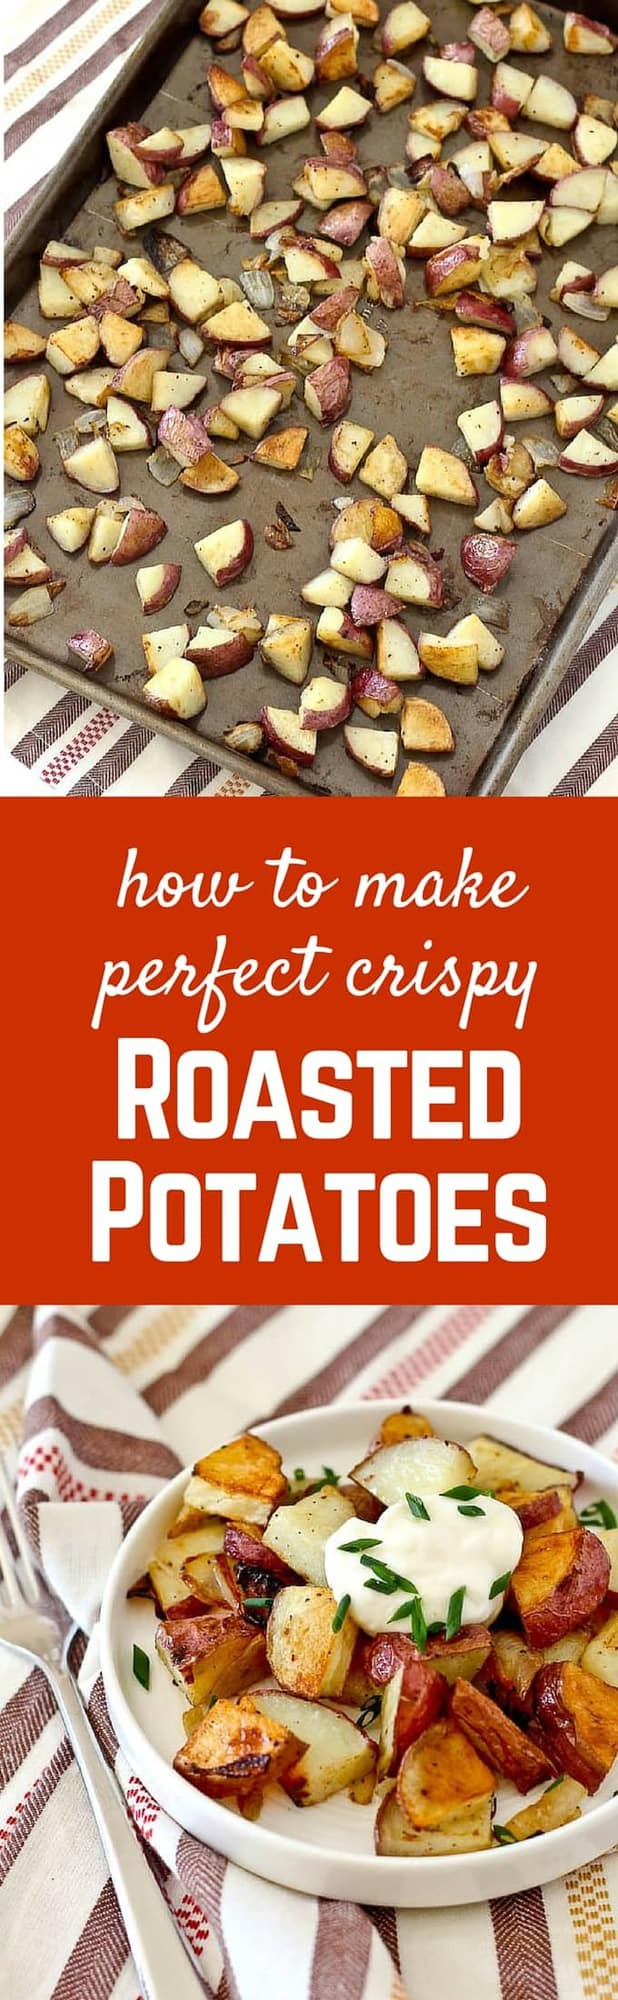 Don't settle for soggy potatoes. Learn how to make crispy roasted potatoes - it's SO easy! They're irresistibly delicious. Recipe on RachelCooks.com - great for breakfast!